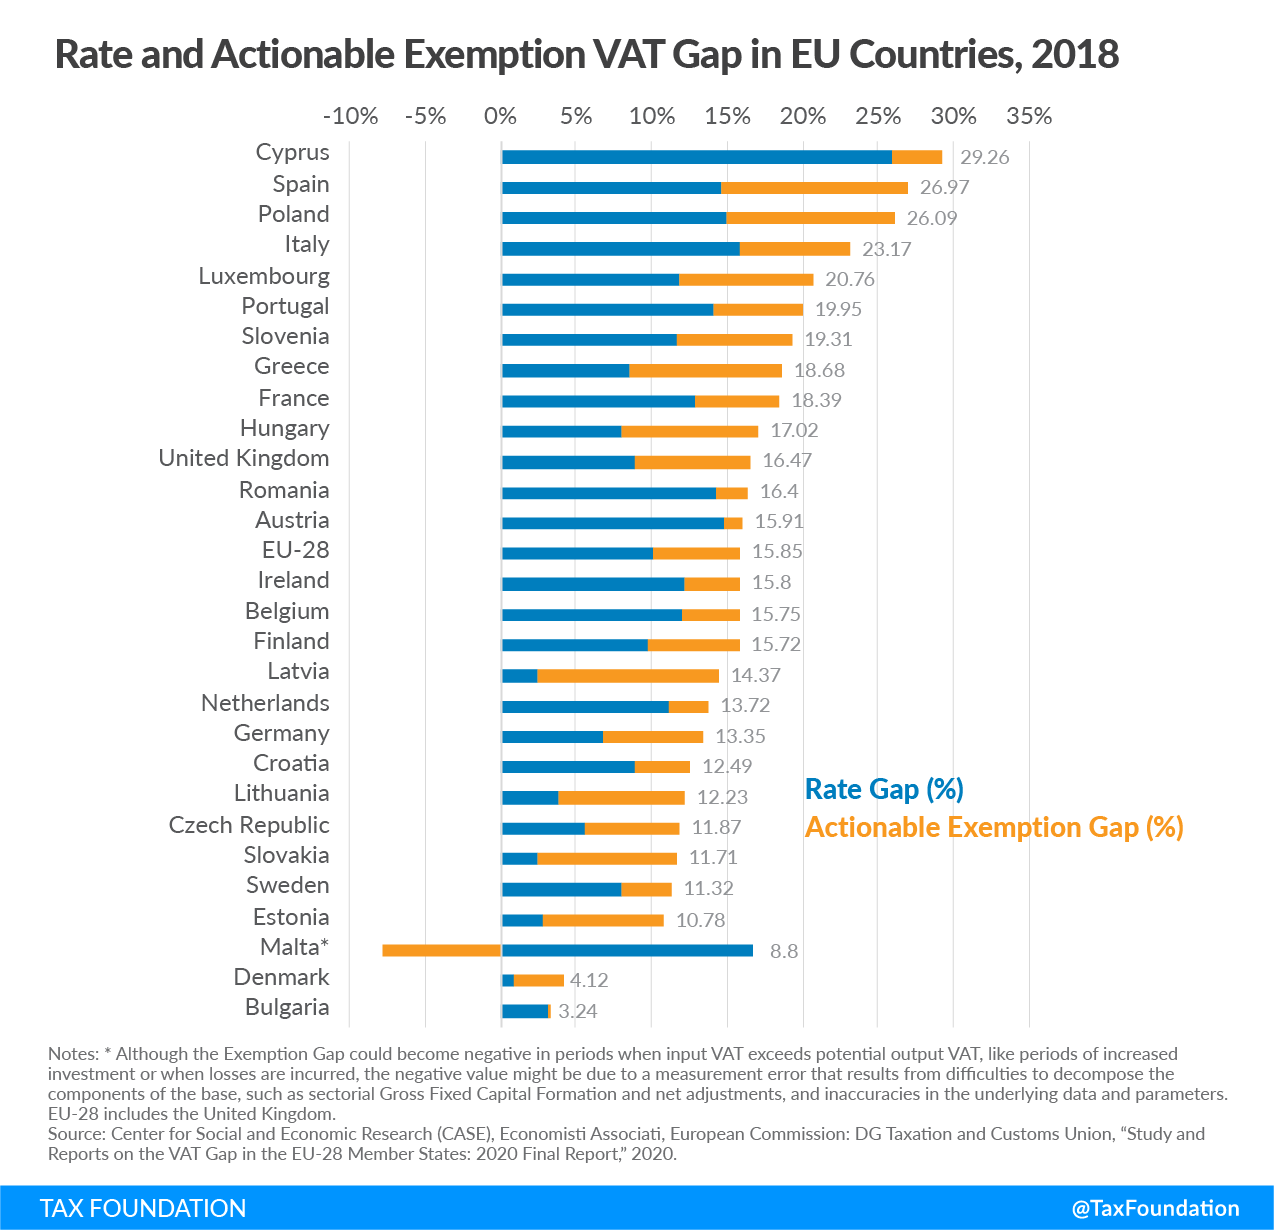 Rate and Actionable Exemption VAT Gap in EU Countries, 2018 Consumption taxes in the OECD consumption tax trends, Sales tax vs. VAT. Excise tax trends